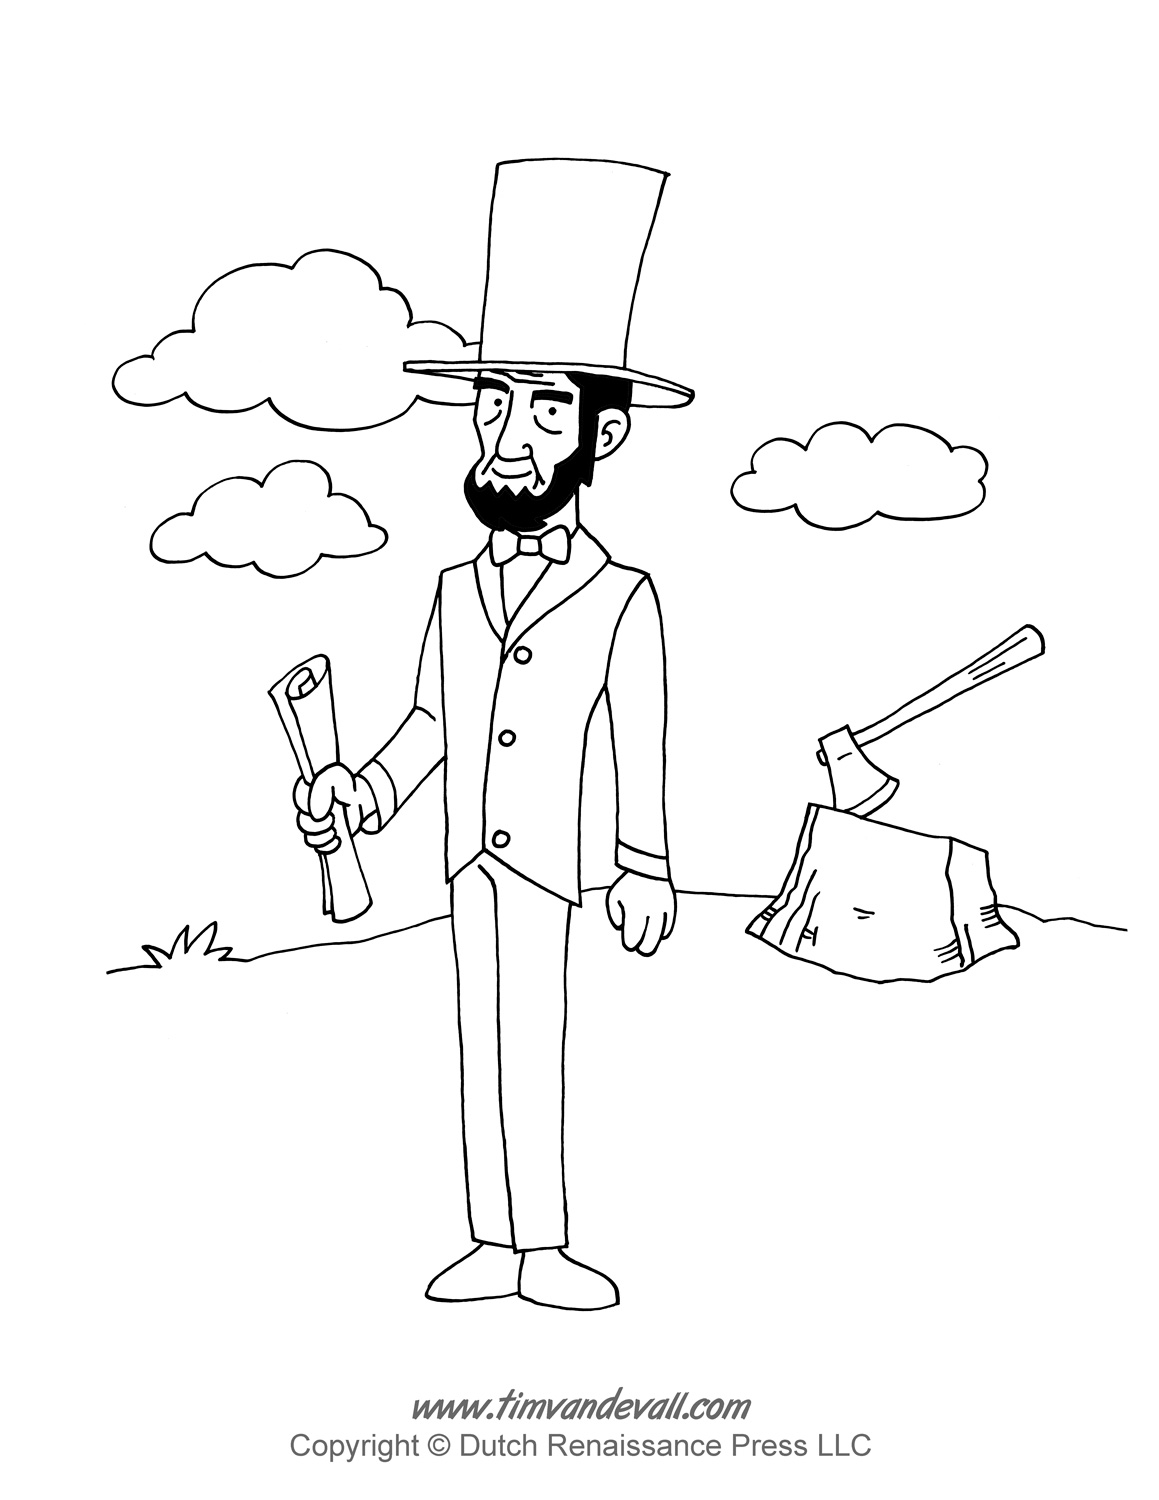 abraham lincoln coloring page tim van de vall comics printables for kids abraham page coloring lincoln